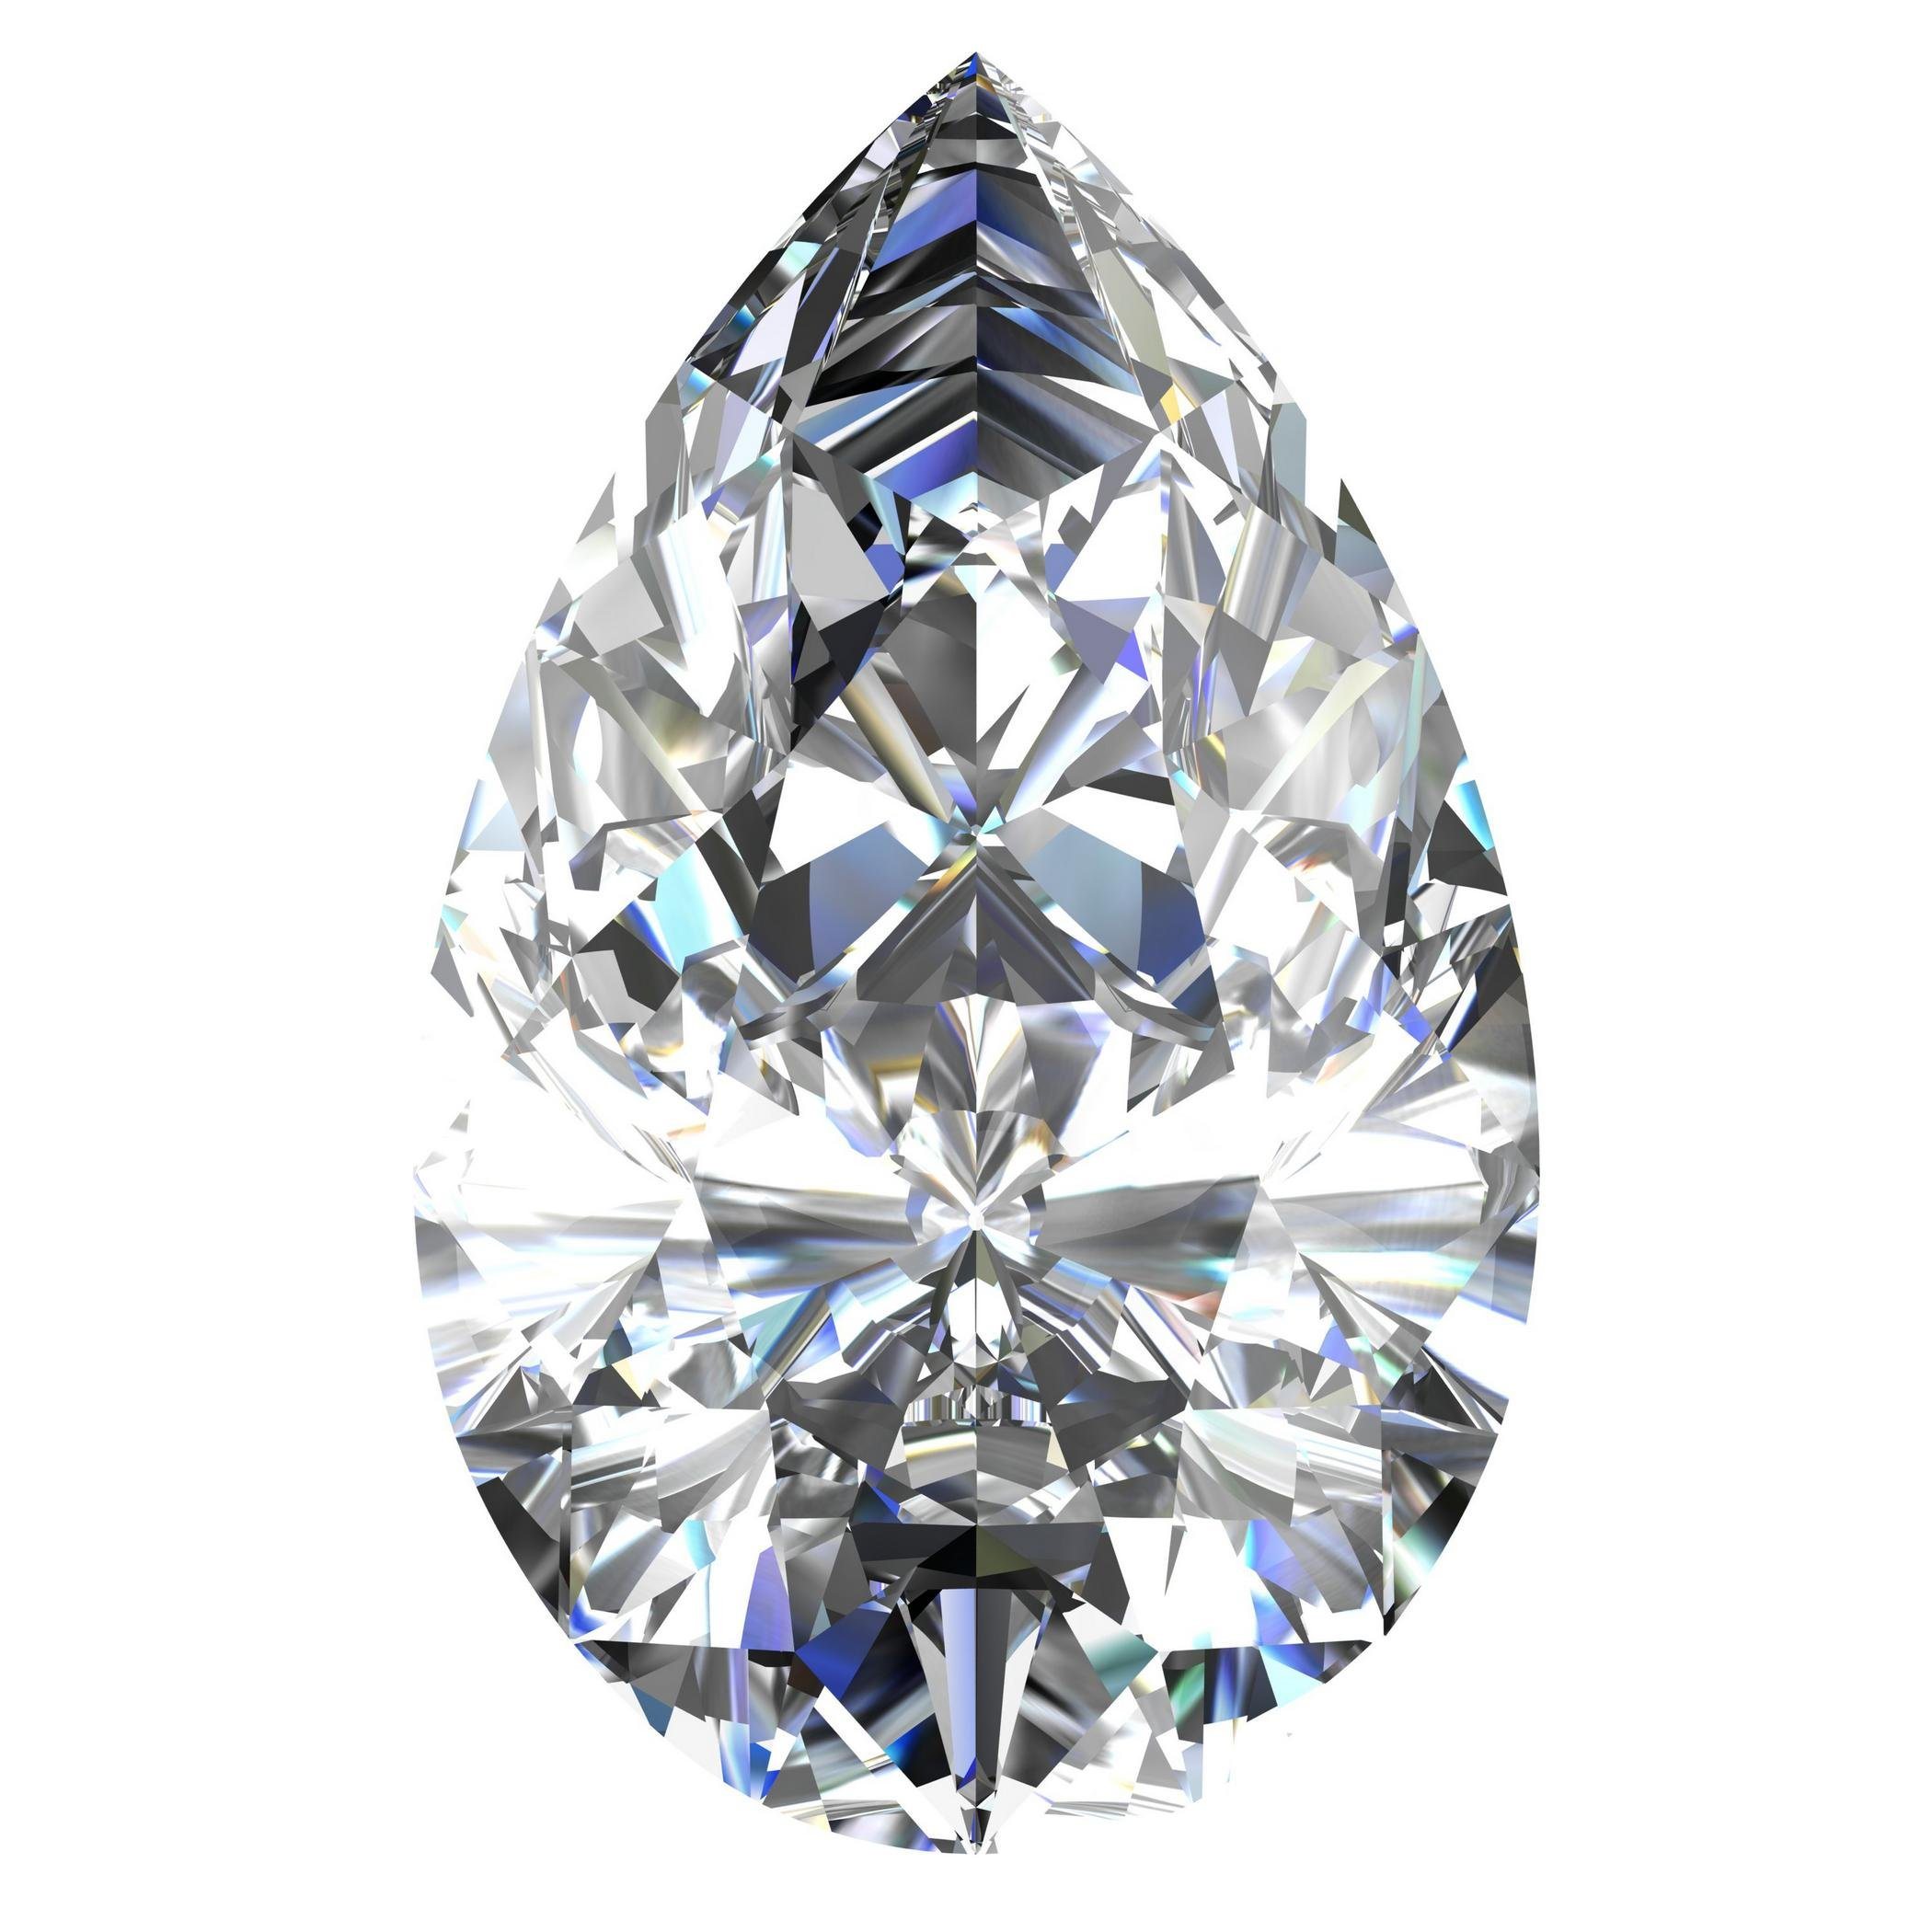 GIA Certified Natural 1.51 Carat Pear Diamond with I Color & SI1 Clarity